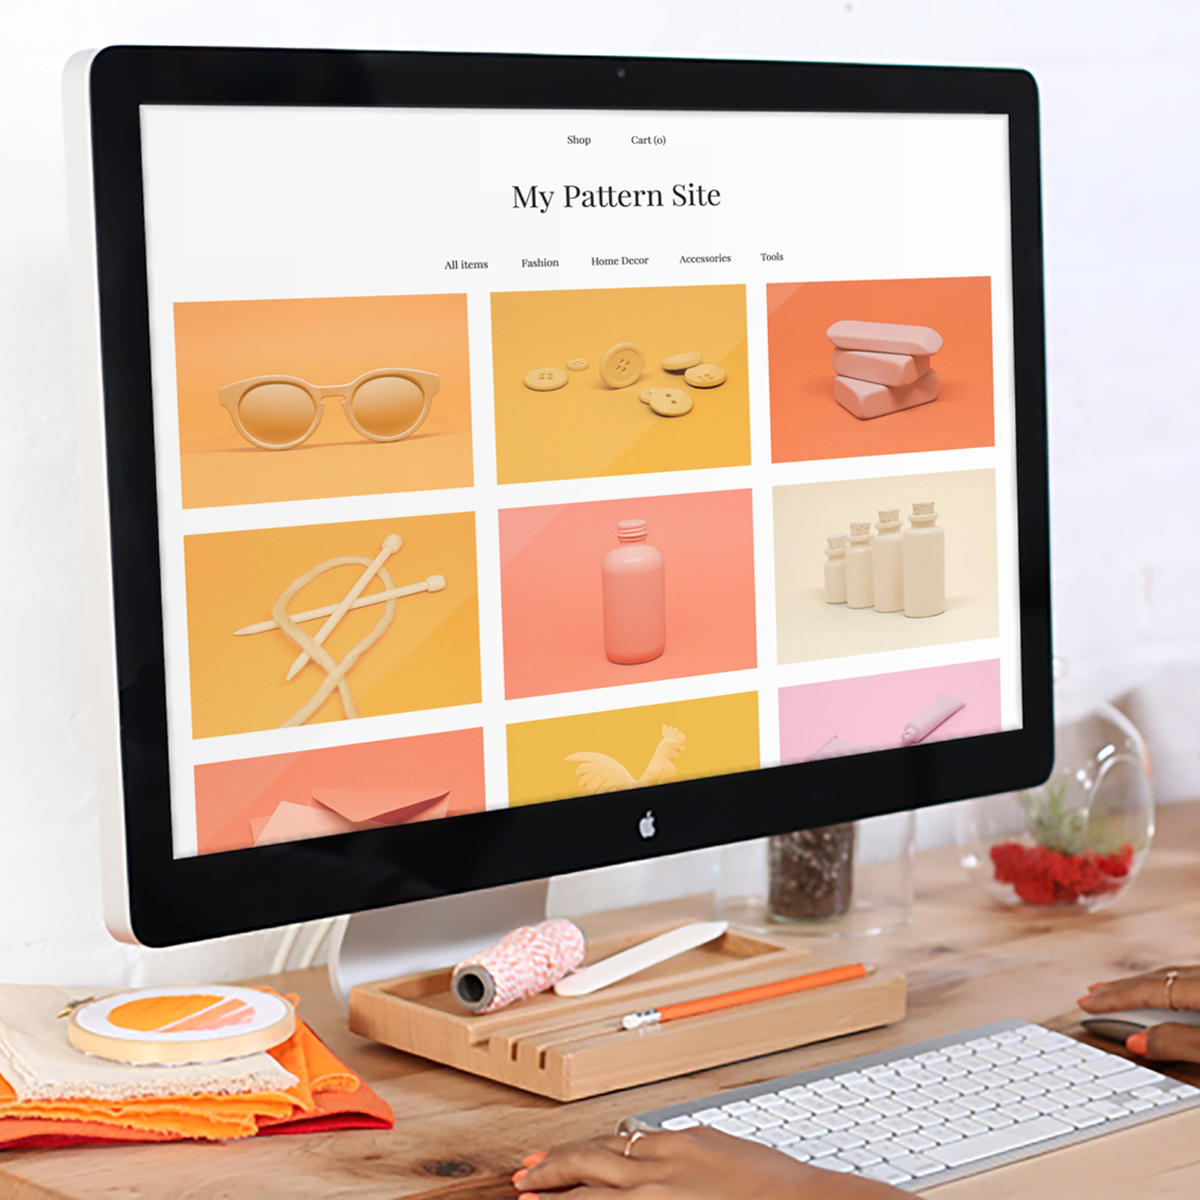 Etsy launches pattern a website builder for its sellers techcrunch jeuxipadfo Choice Image